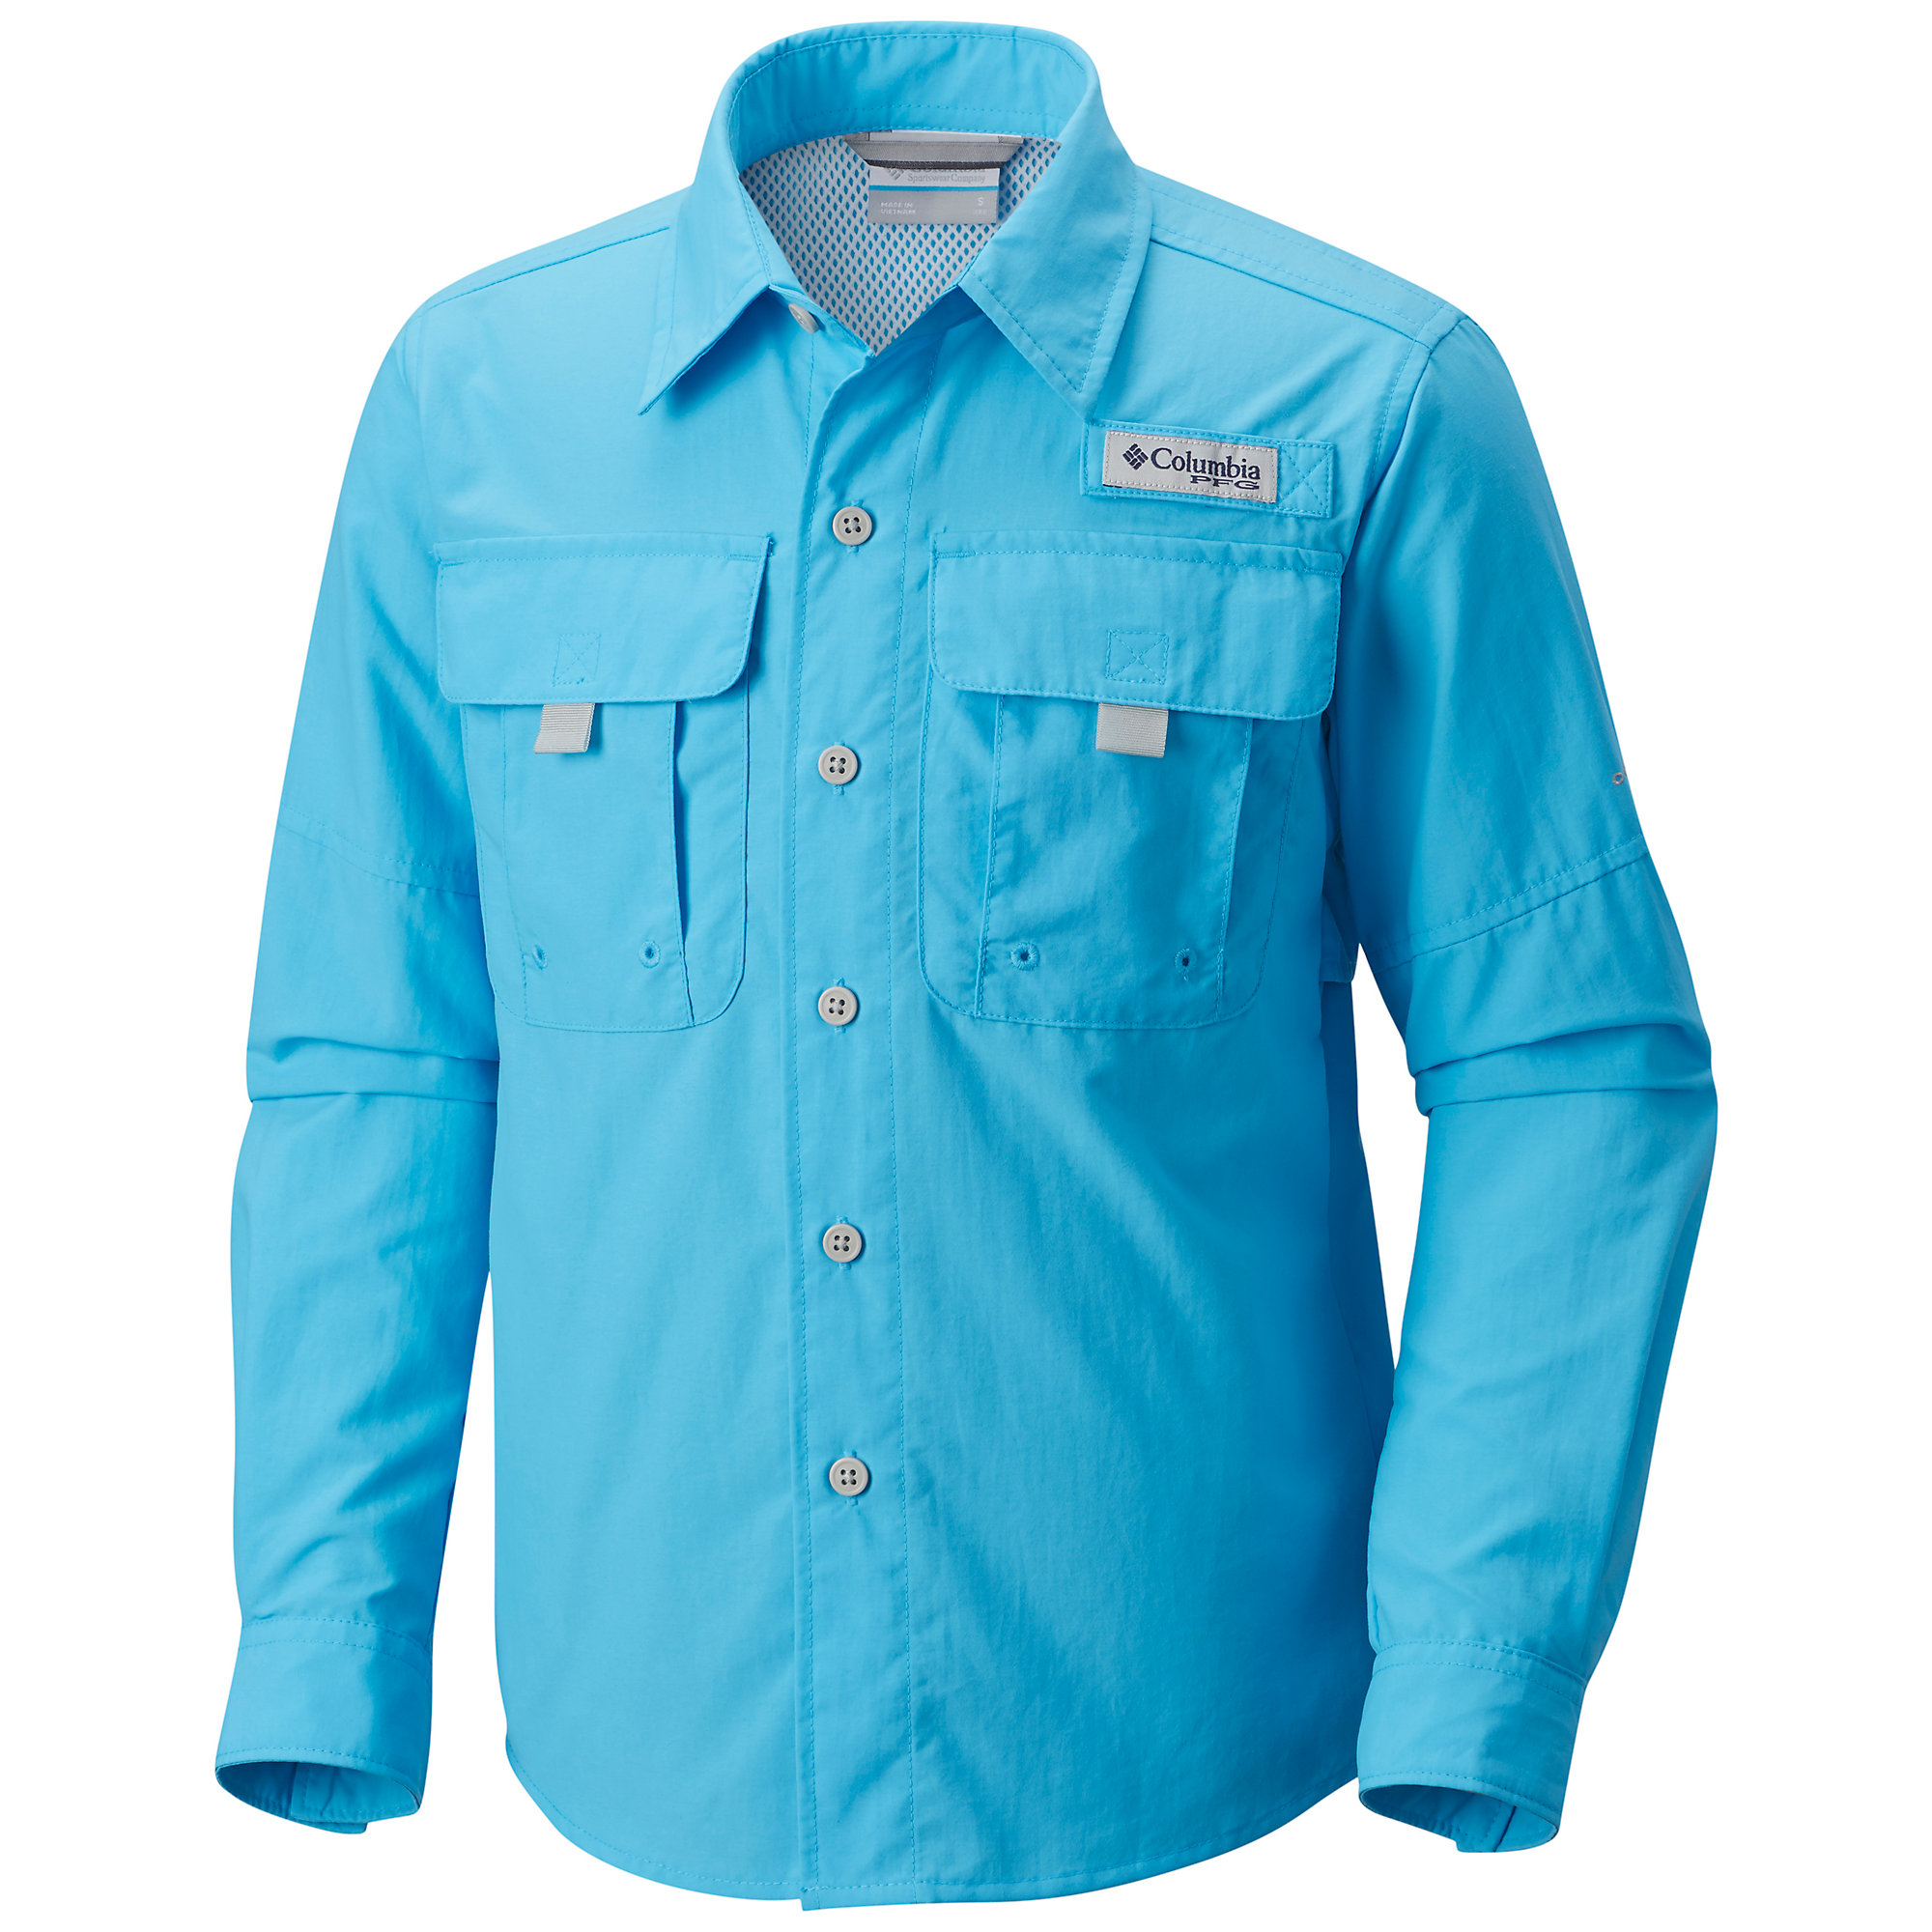 Columbia Bahama Long Sleeve